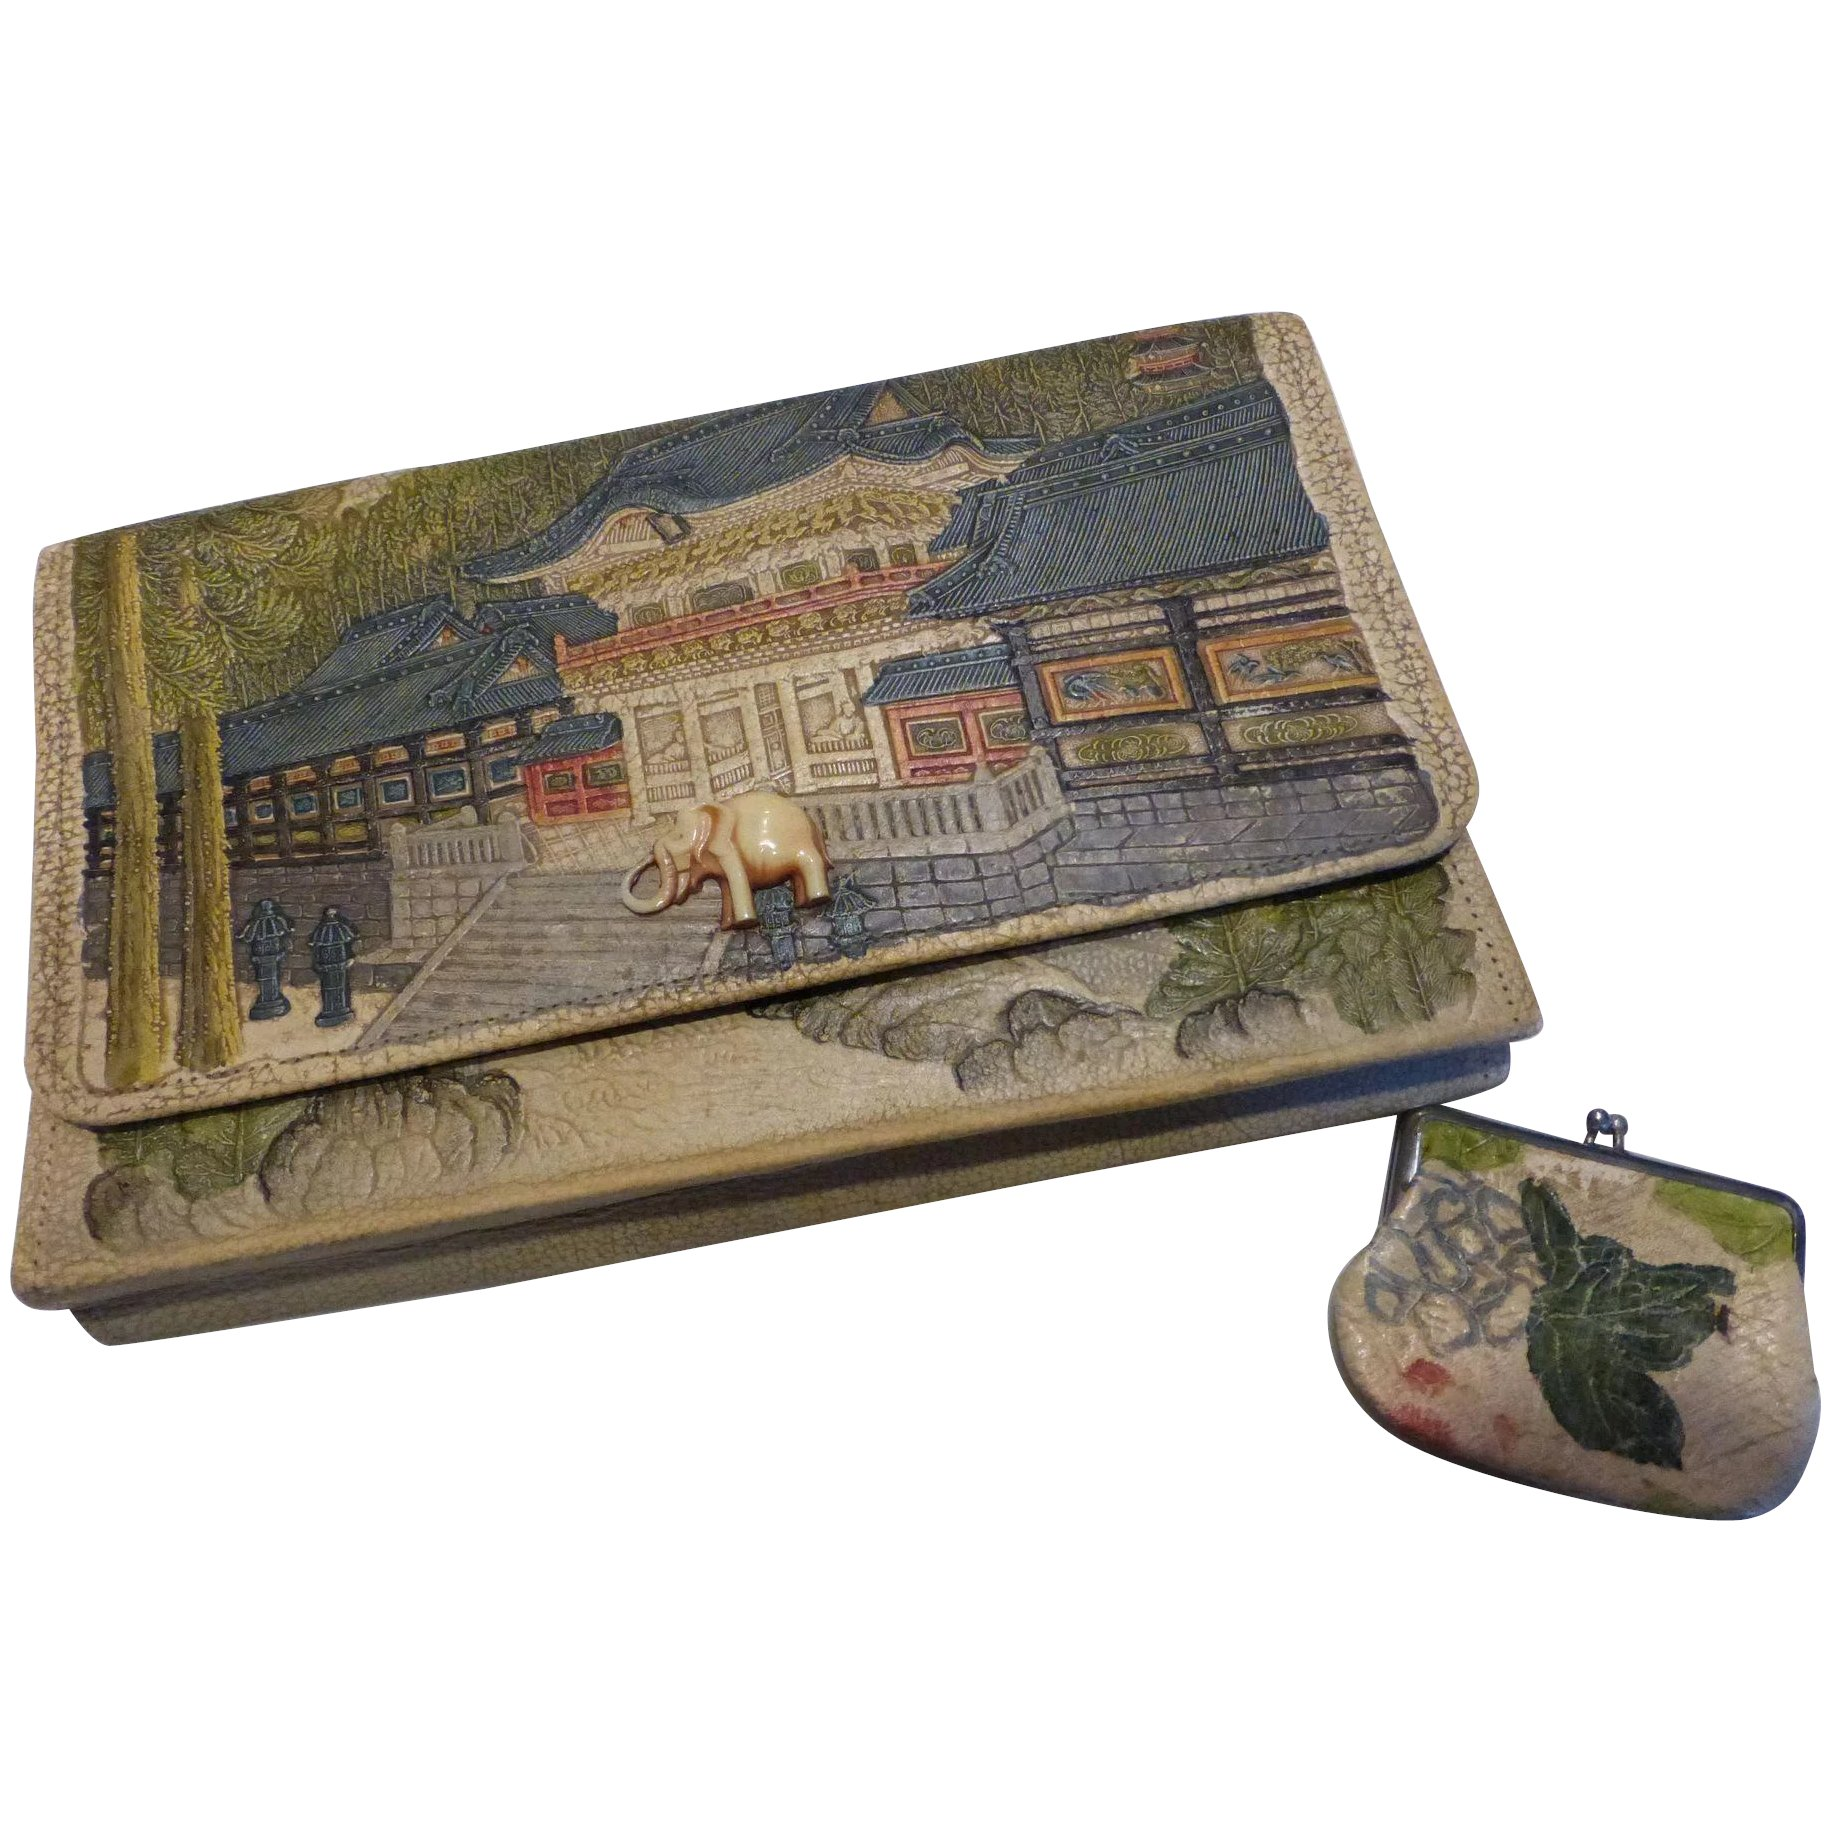 Vintage 1920/'s Japanese Aloha Hawaii Painted Embossed Leather Like Clutch With Celluloid Elephant...